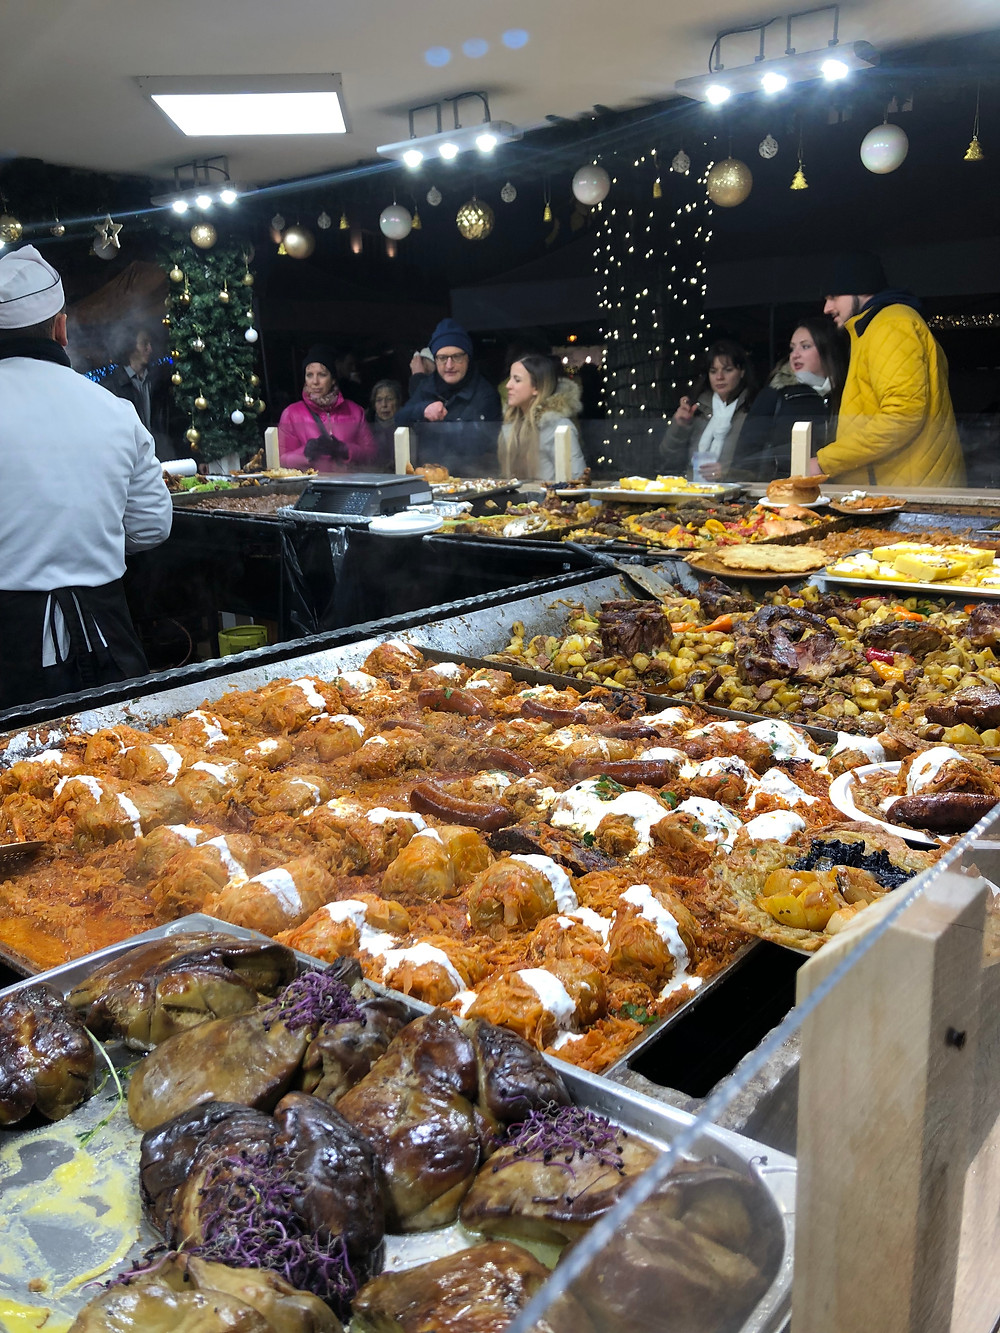 One of the food stands at the Budapest market